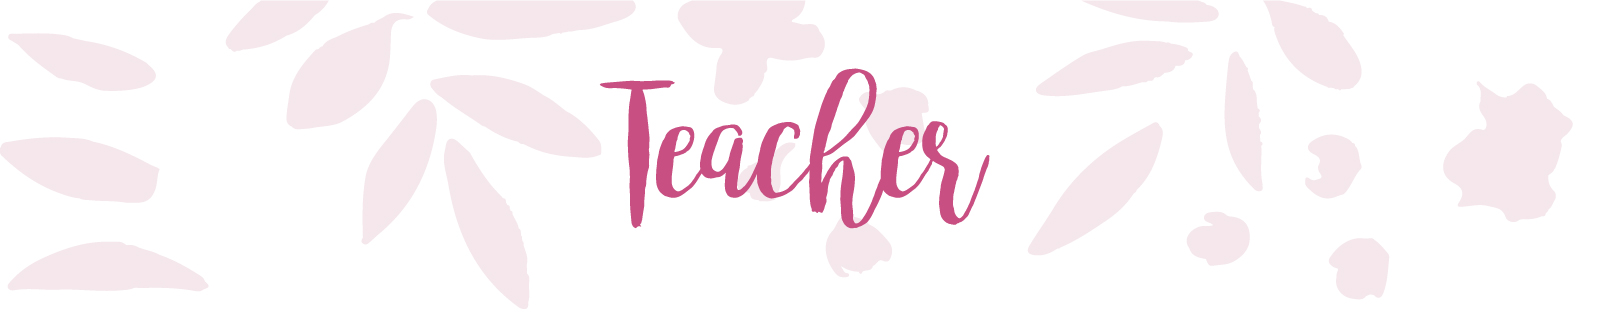 Teacher header.jpg